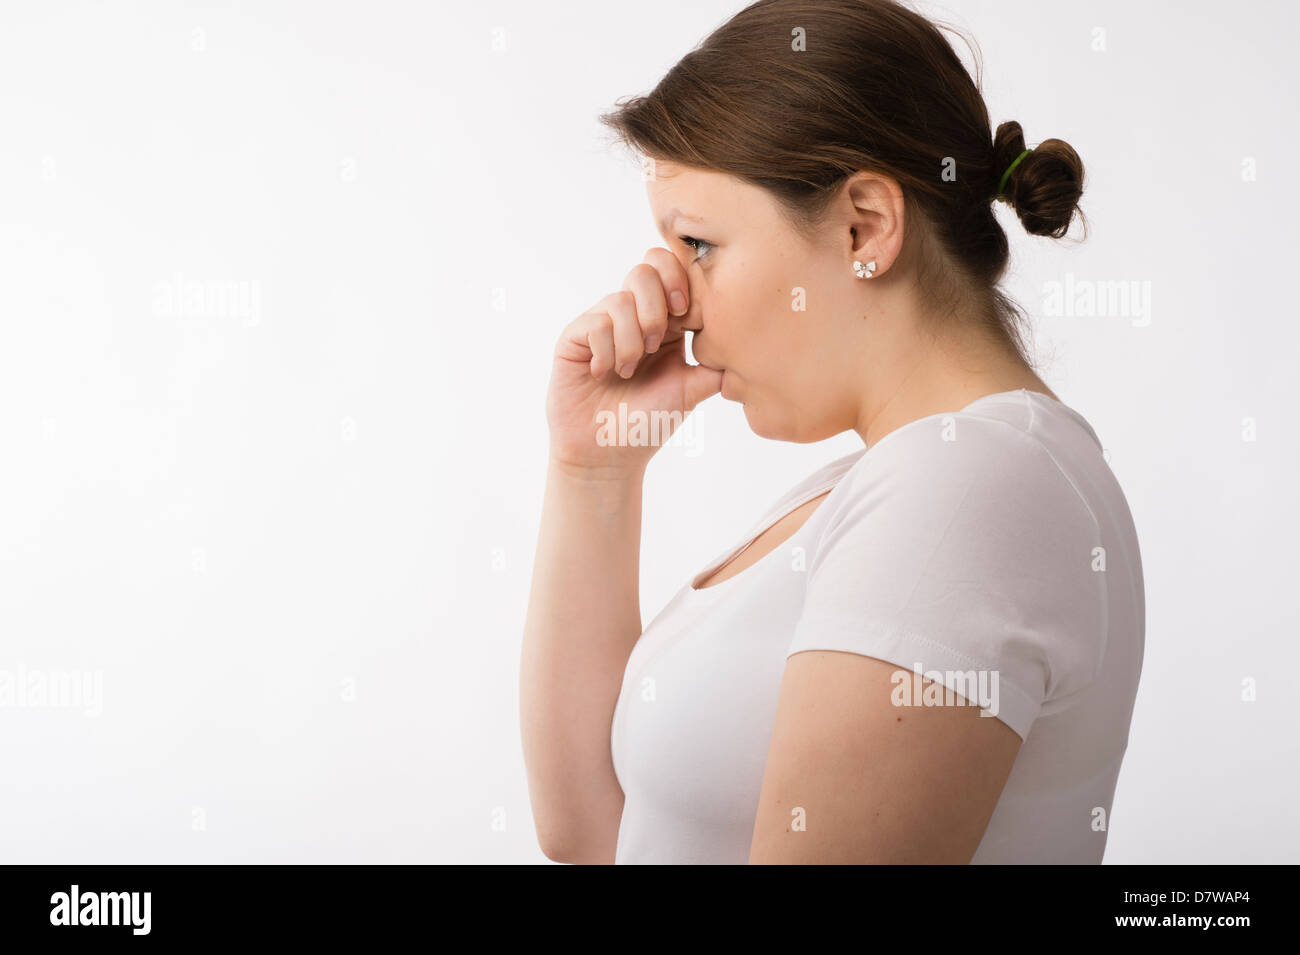 A young brunette teenage Caucasian girl sucking her thumb immature moody sulky sulking adolescent uk - Stock Image